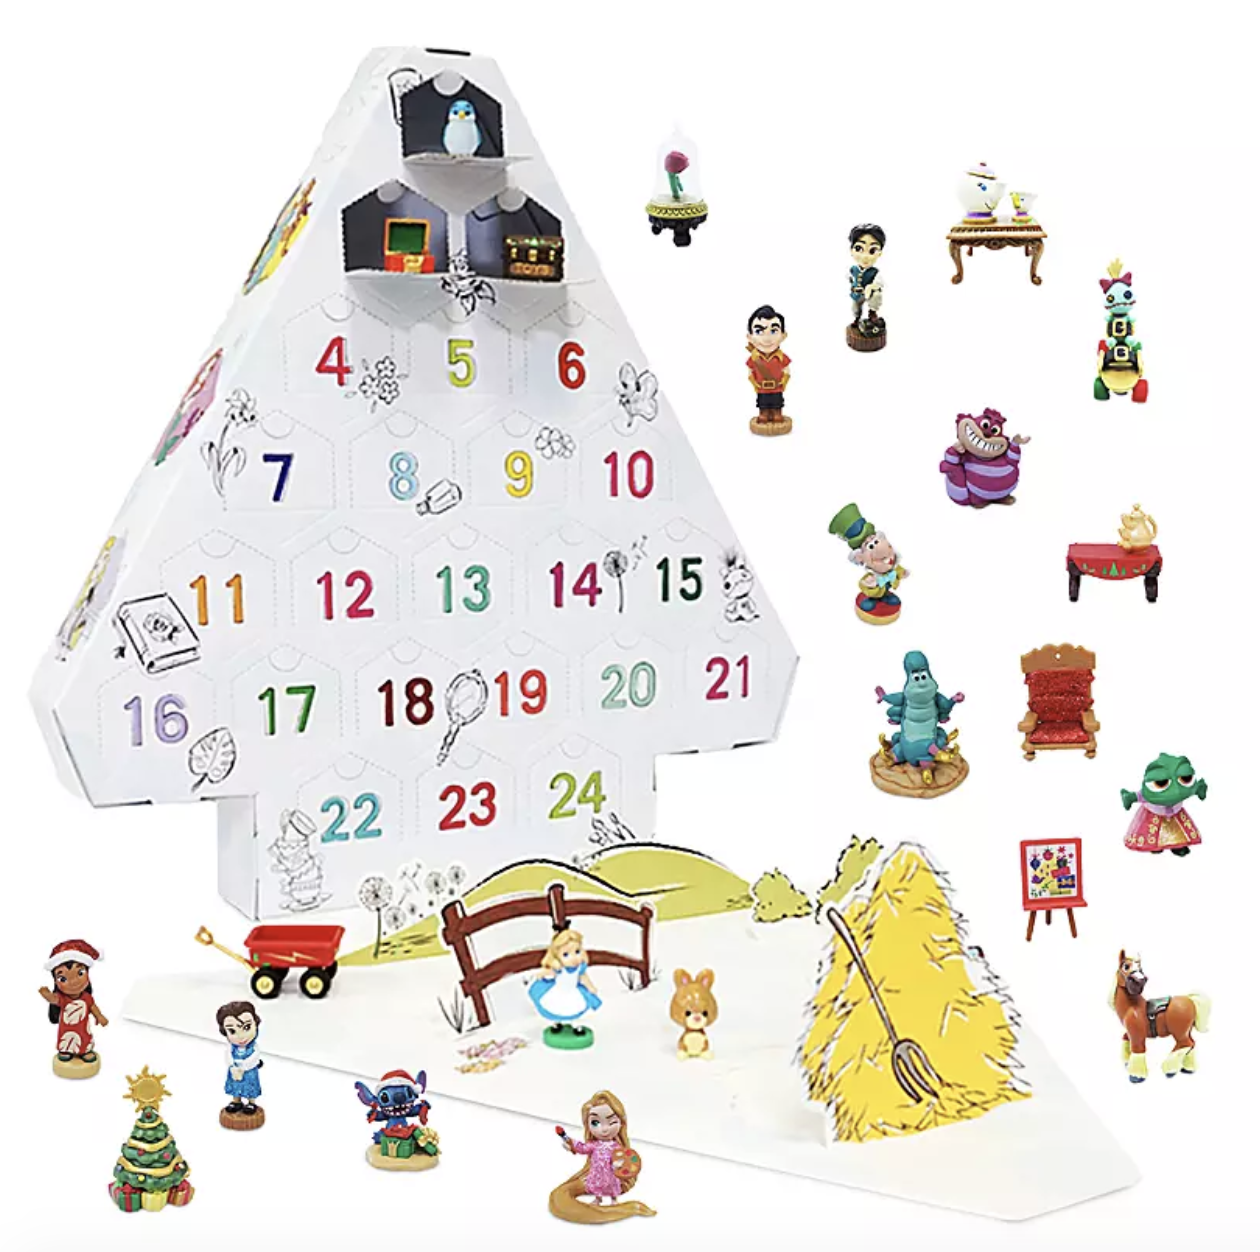 the white tree shaped calendar with 24 slots, surrounded by disney toys